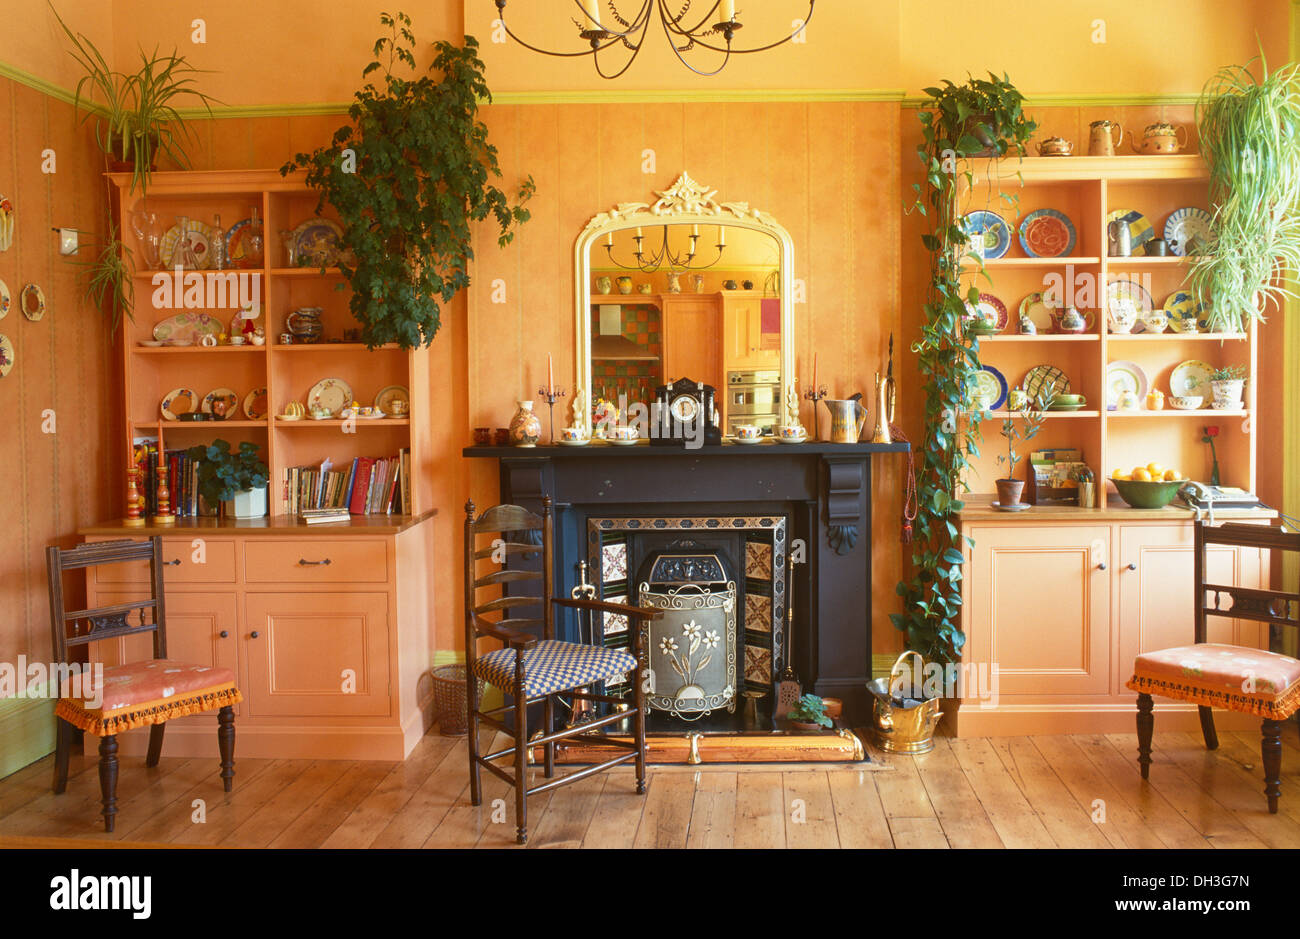 Merveilleux Antique Chairs And Painted Dressers On Either Side Of Black Victorian  Fireplace In Pale Orange Dining Room With Wooden Flooring